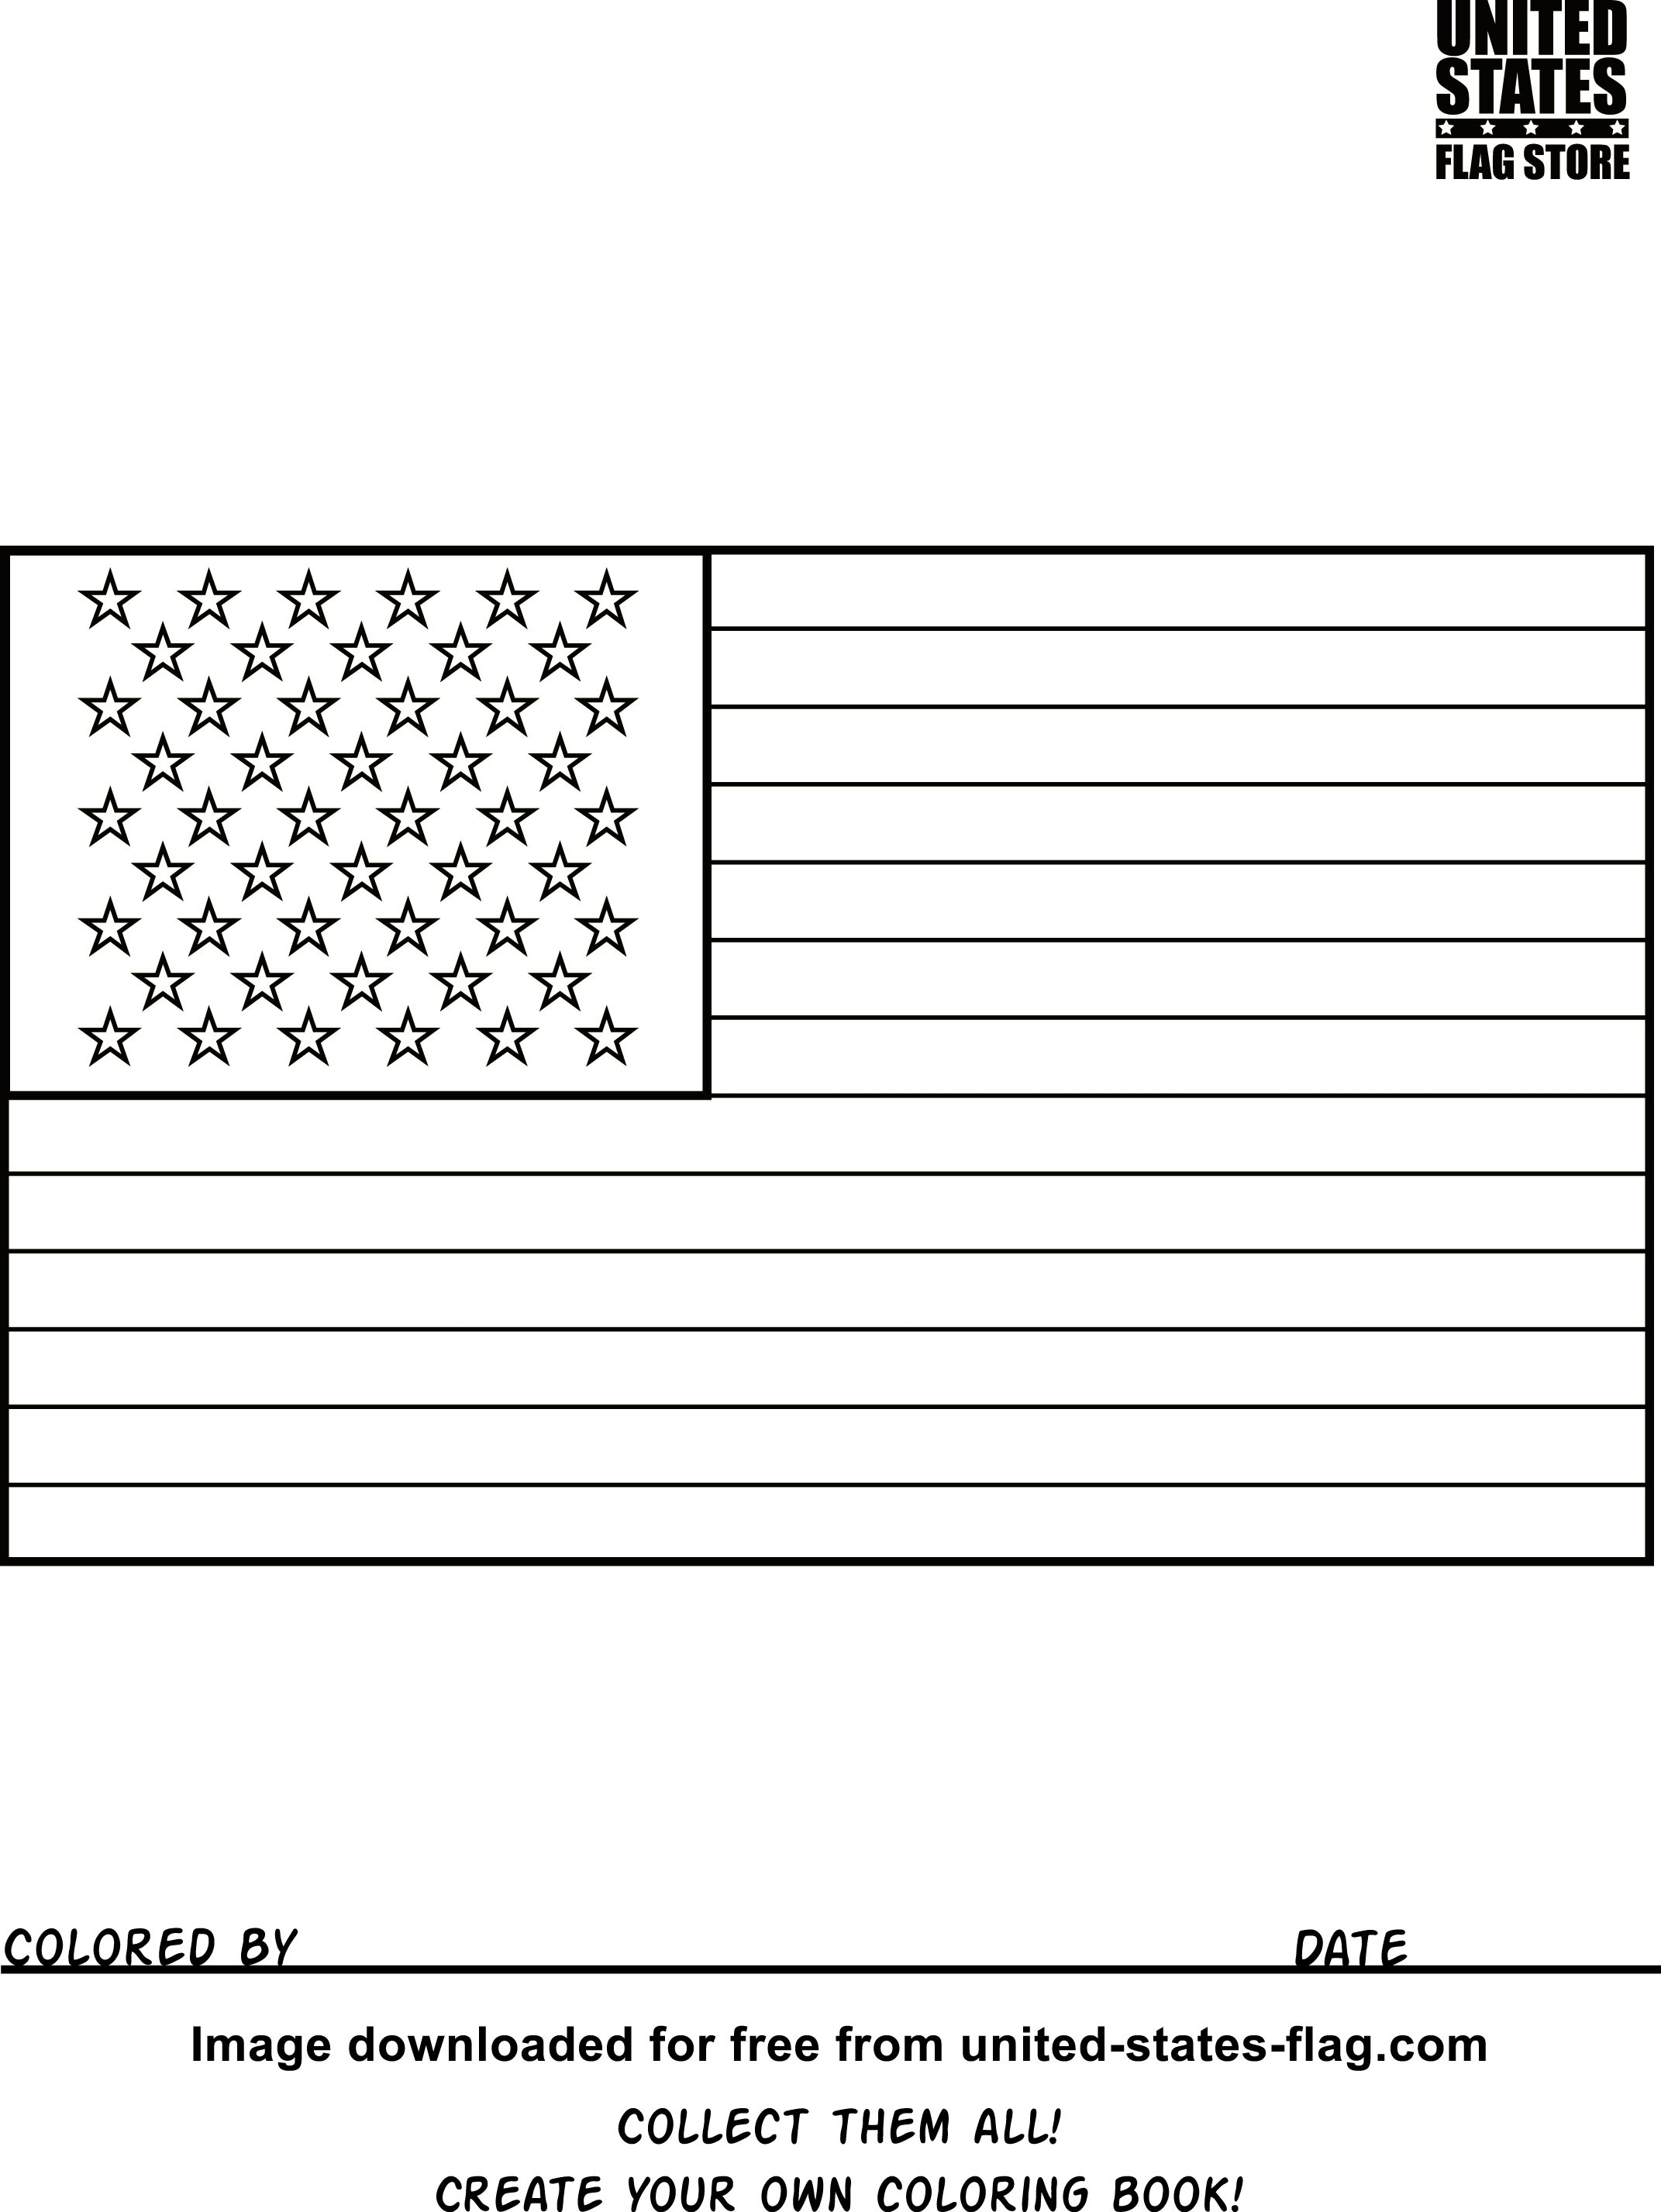 Free American Flag Coloring Pages - Free Printable American Flag Coloring Page